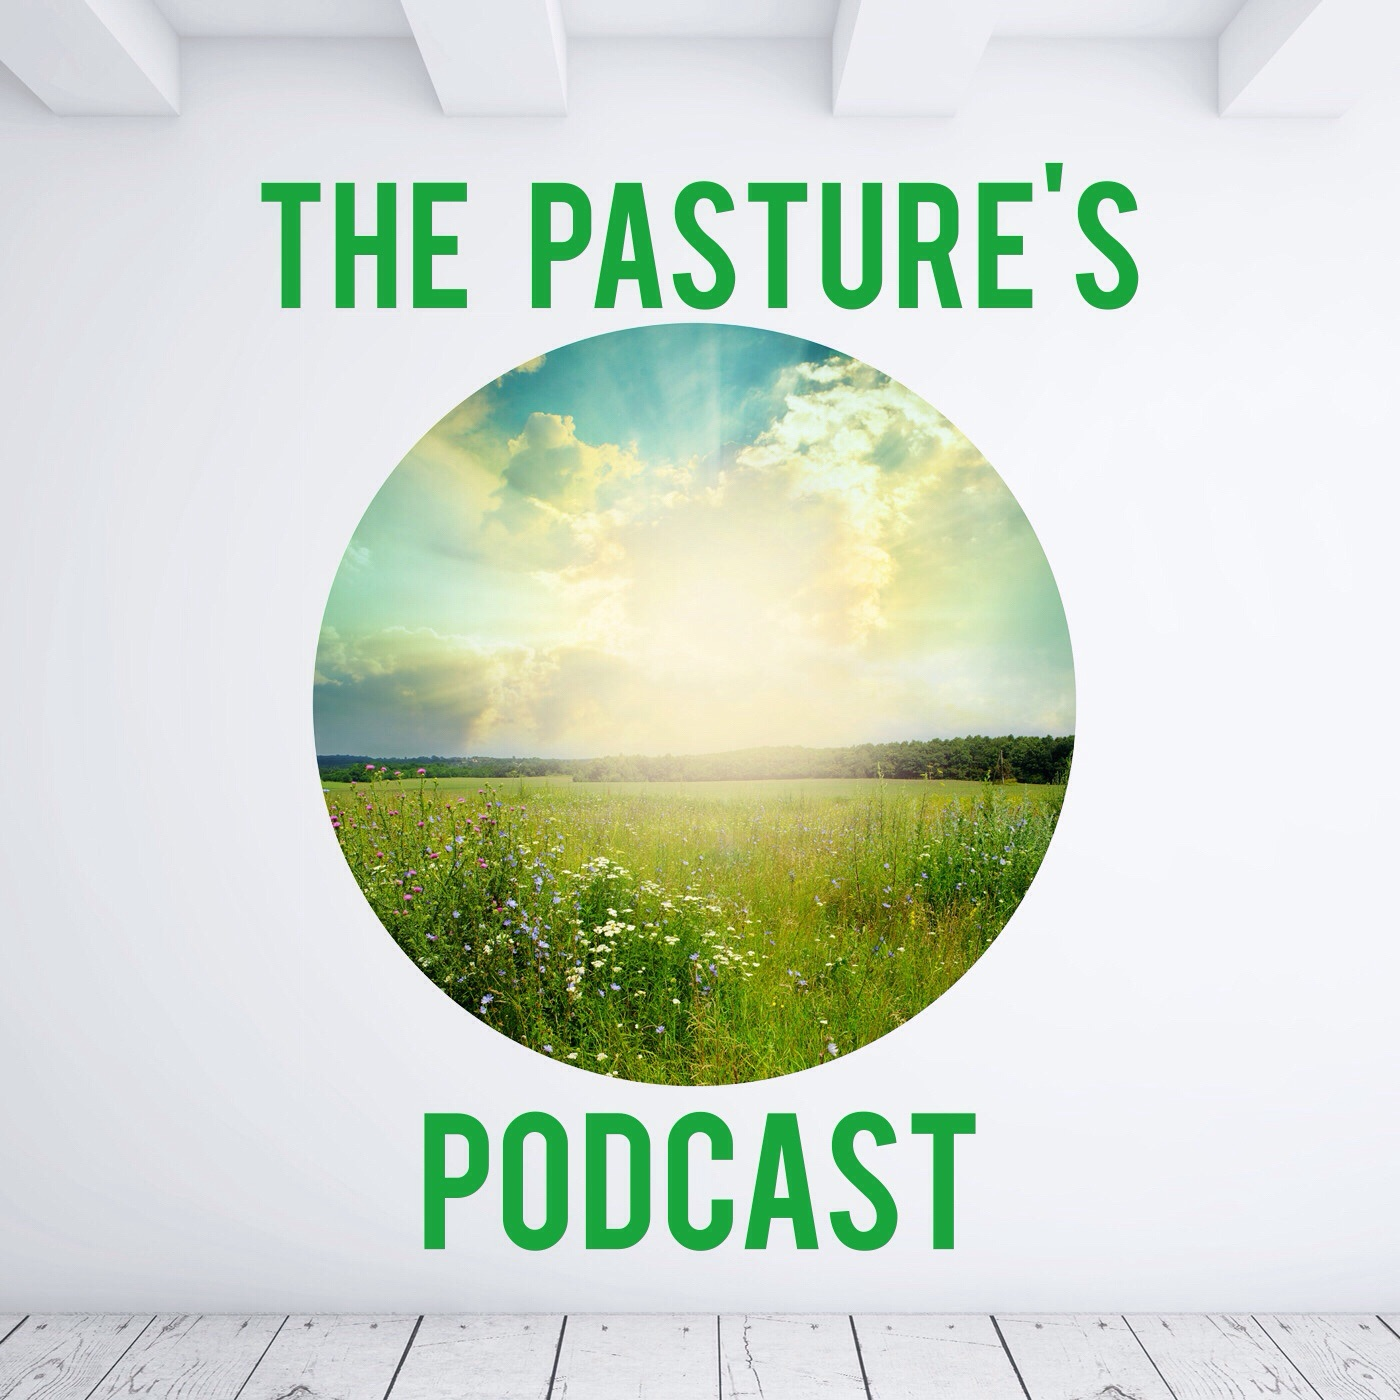 The Pasture's Podcast